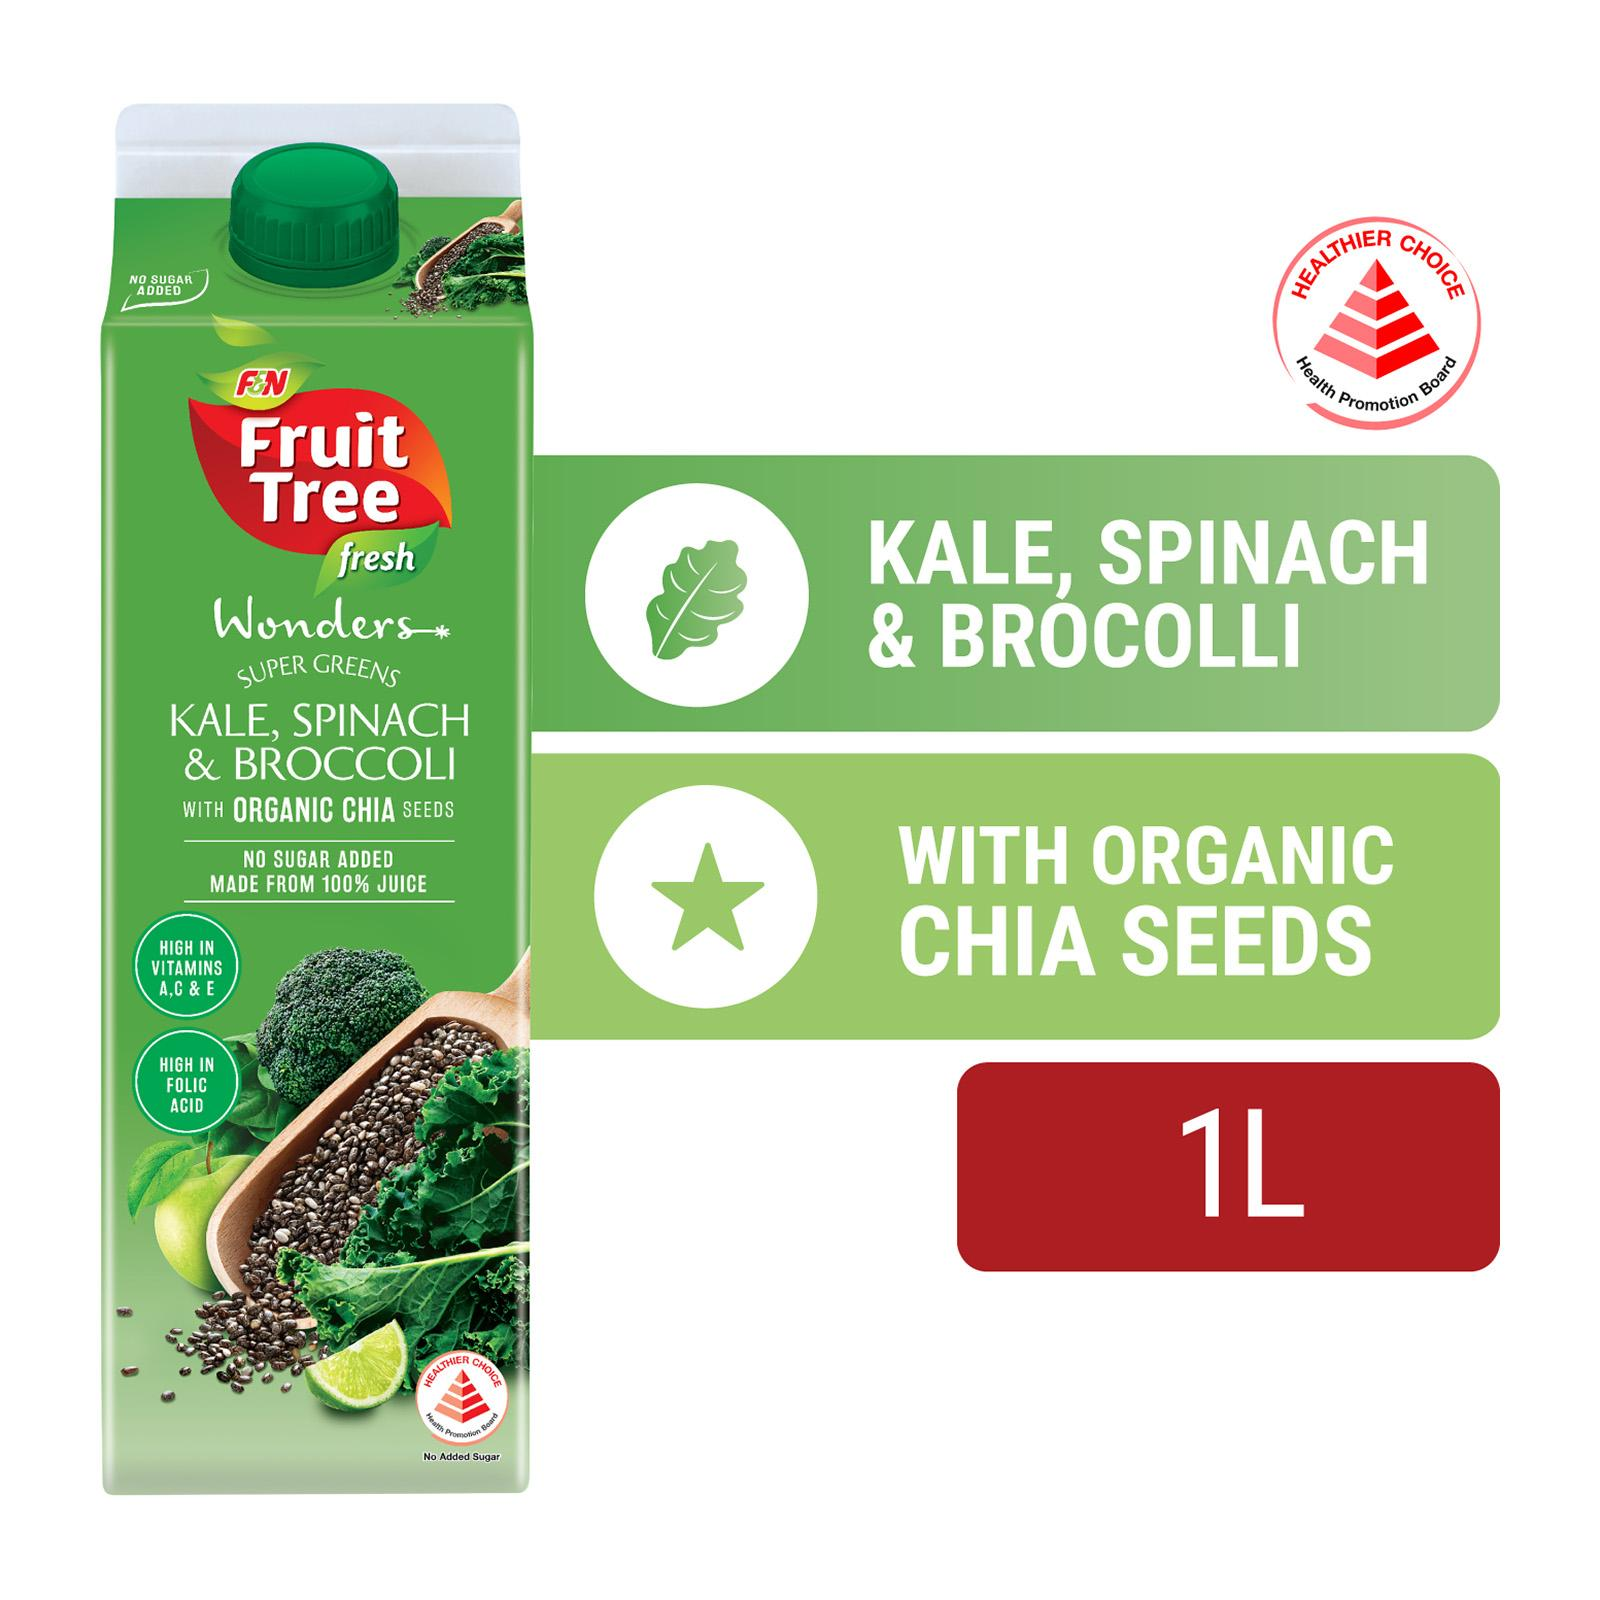 F&N Fruit Tree Fresh Wonders Kale Spinach and Broccoli Mixed Juice With Chia Seeds NSA